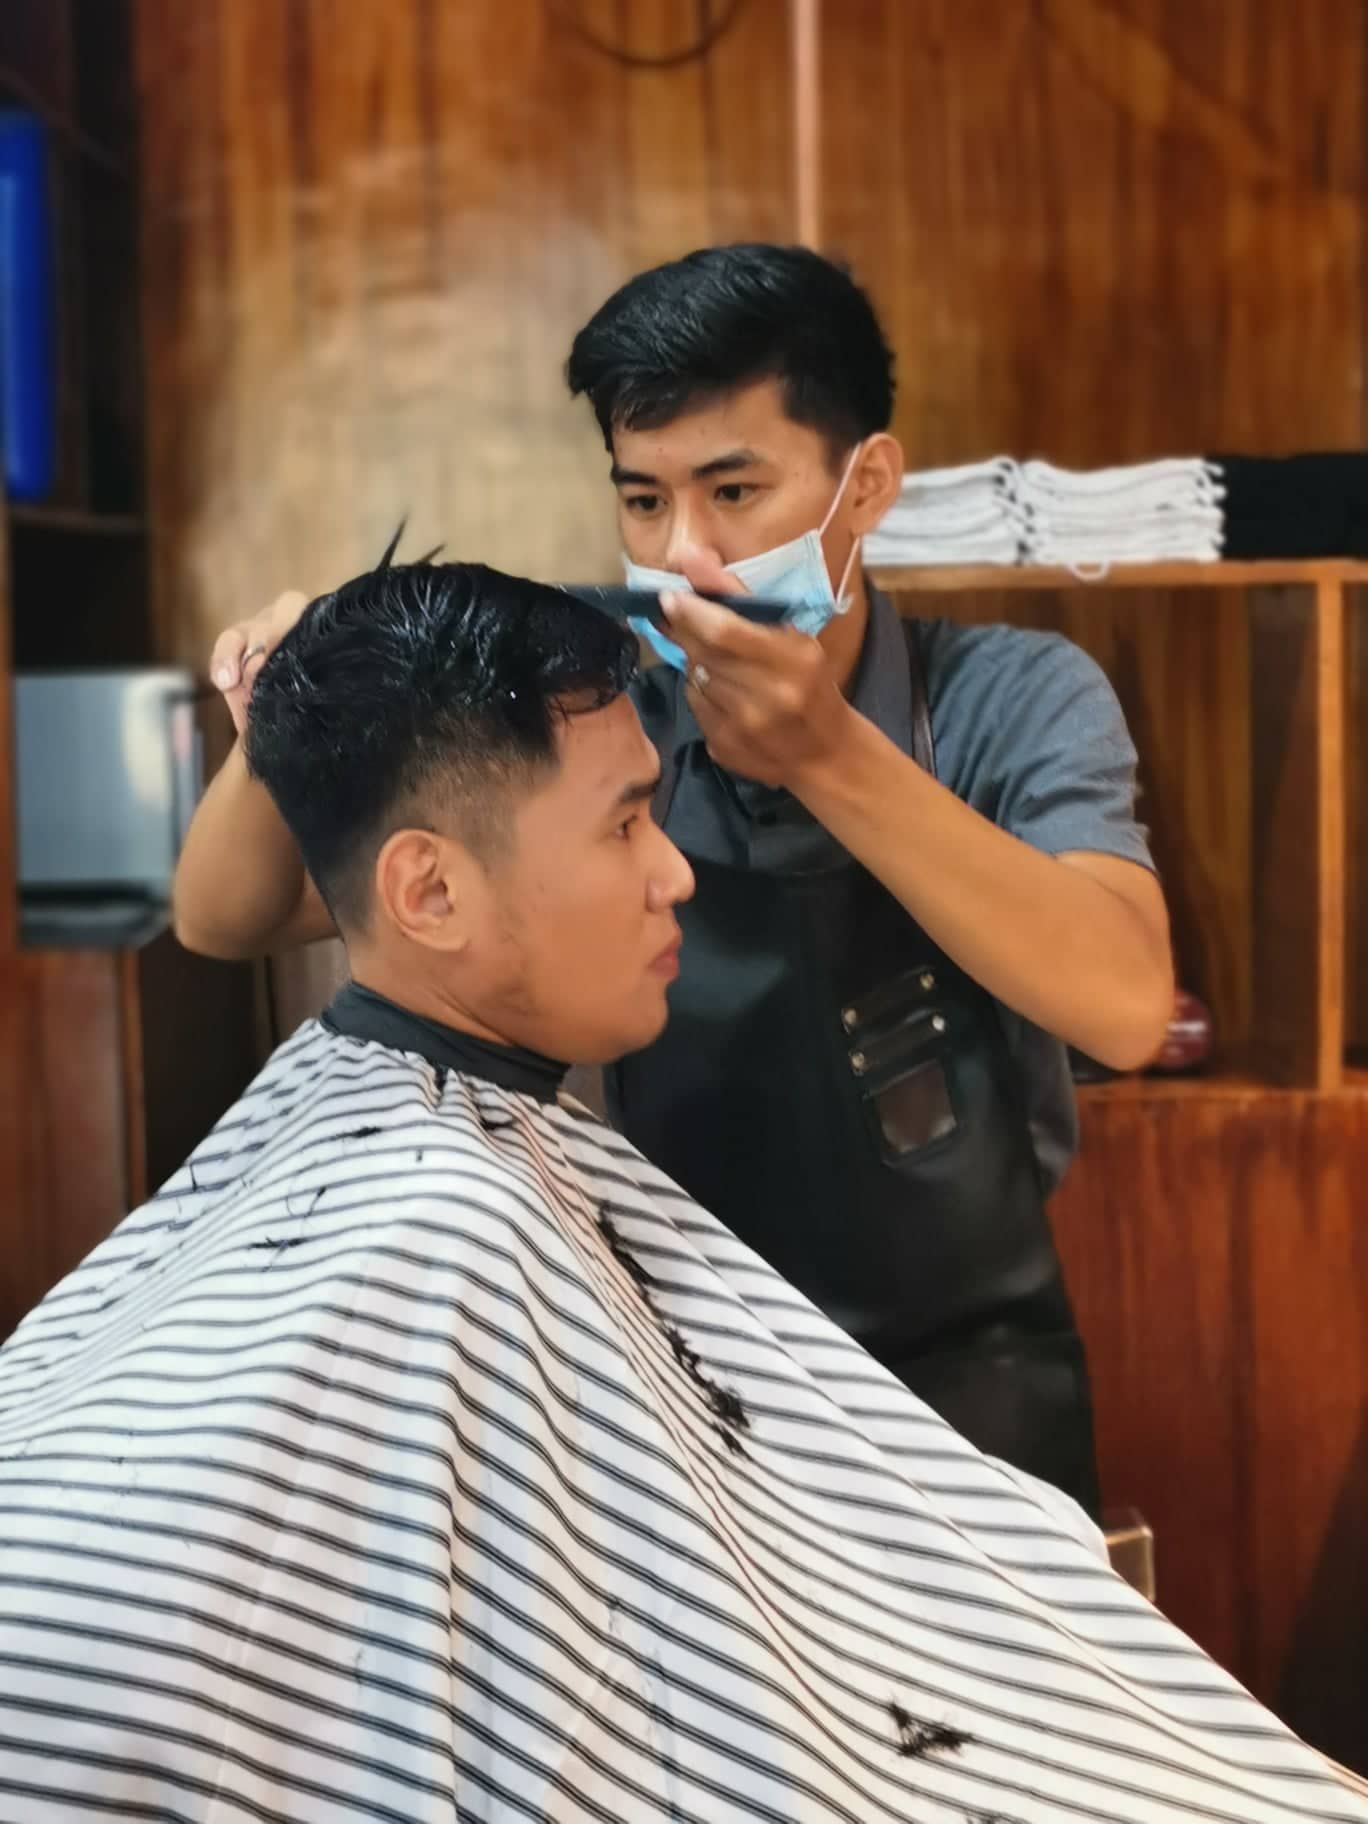 tidal shave barbershop in san juan la union (14)